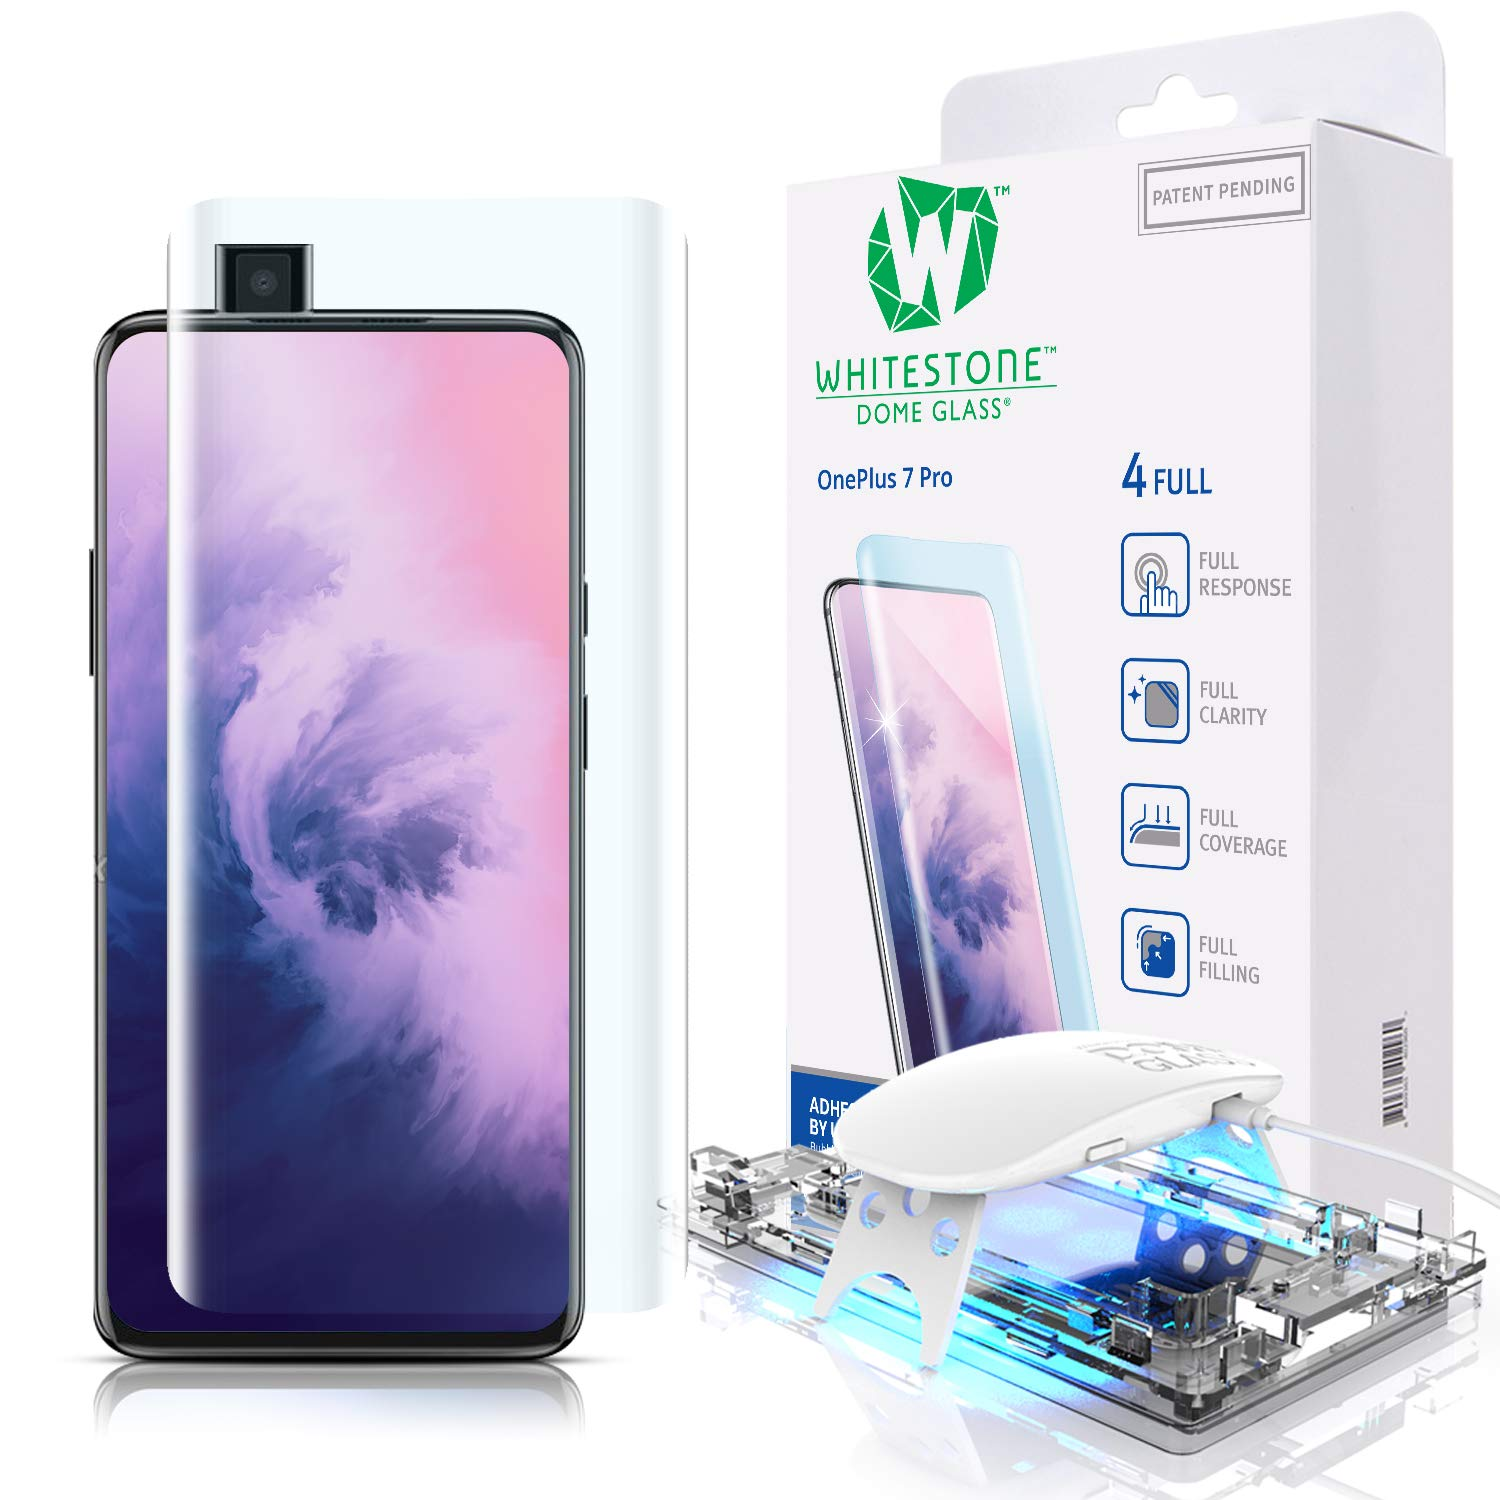 Tempered Glass Screen Protector for OnePlus 7 Pro and 7 Pro 5G, [Dome Glass] Full 3D Curved Edge Exclusive Solution, Easy Install Kit by Whitestone for OnePlus 7 Pro and 7 Pro 5G - 1 Pack